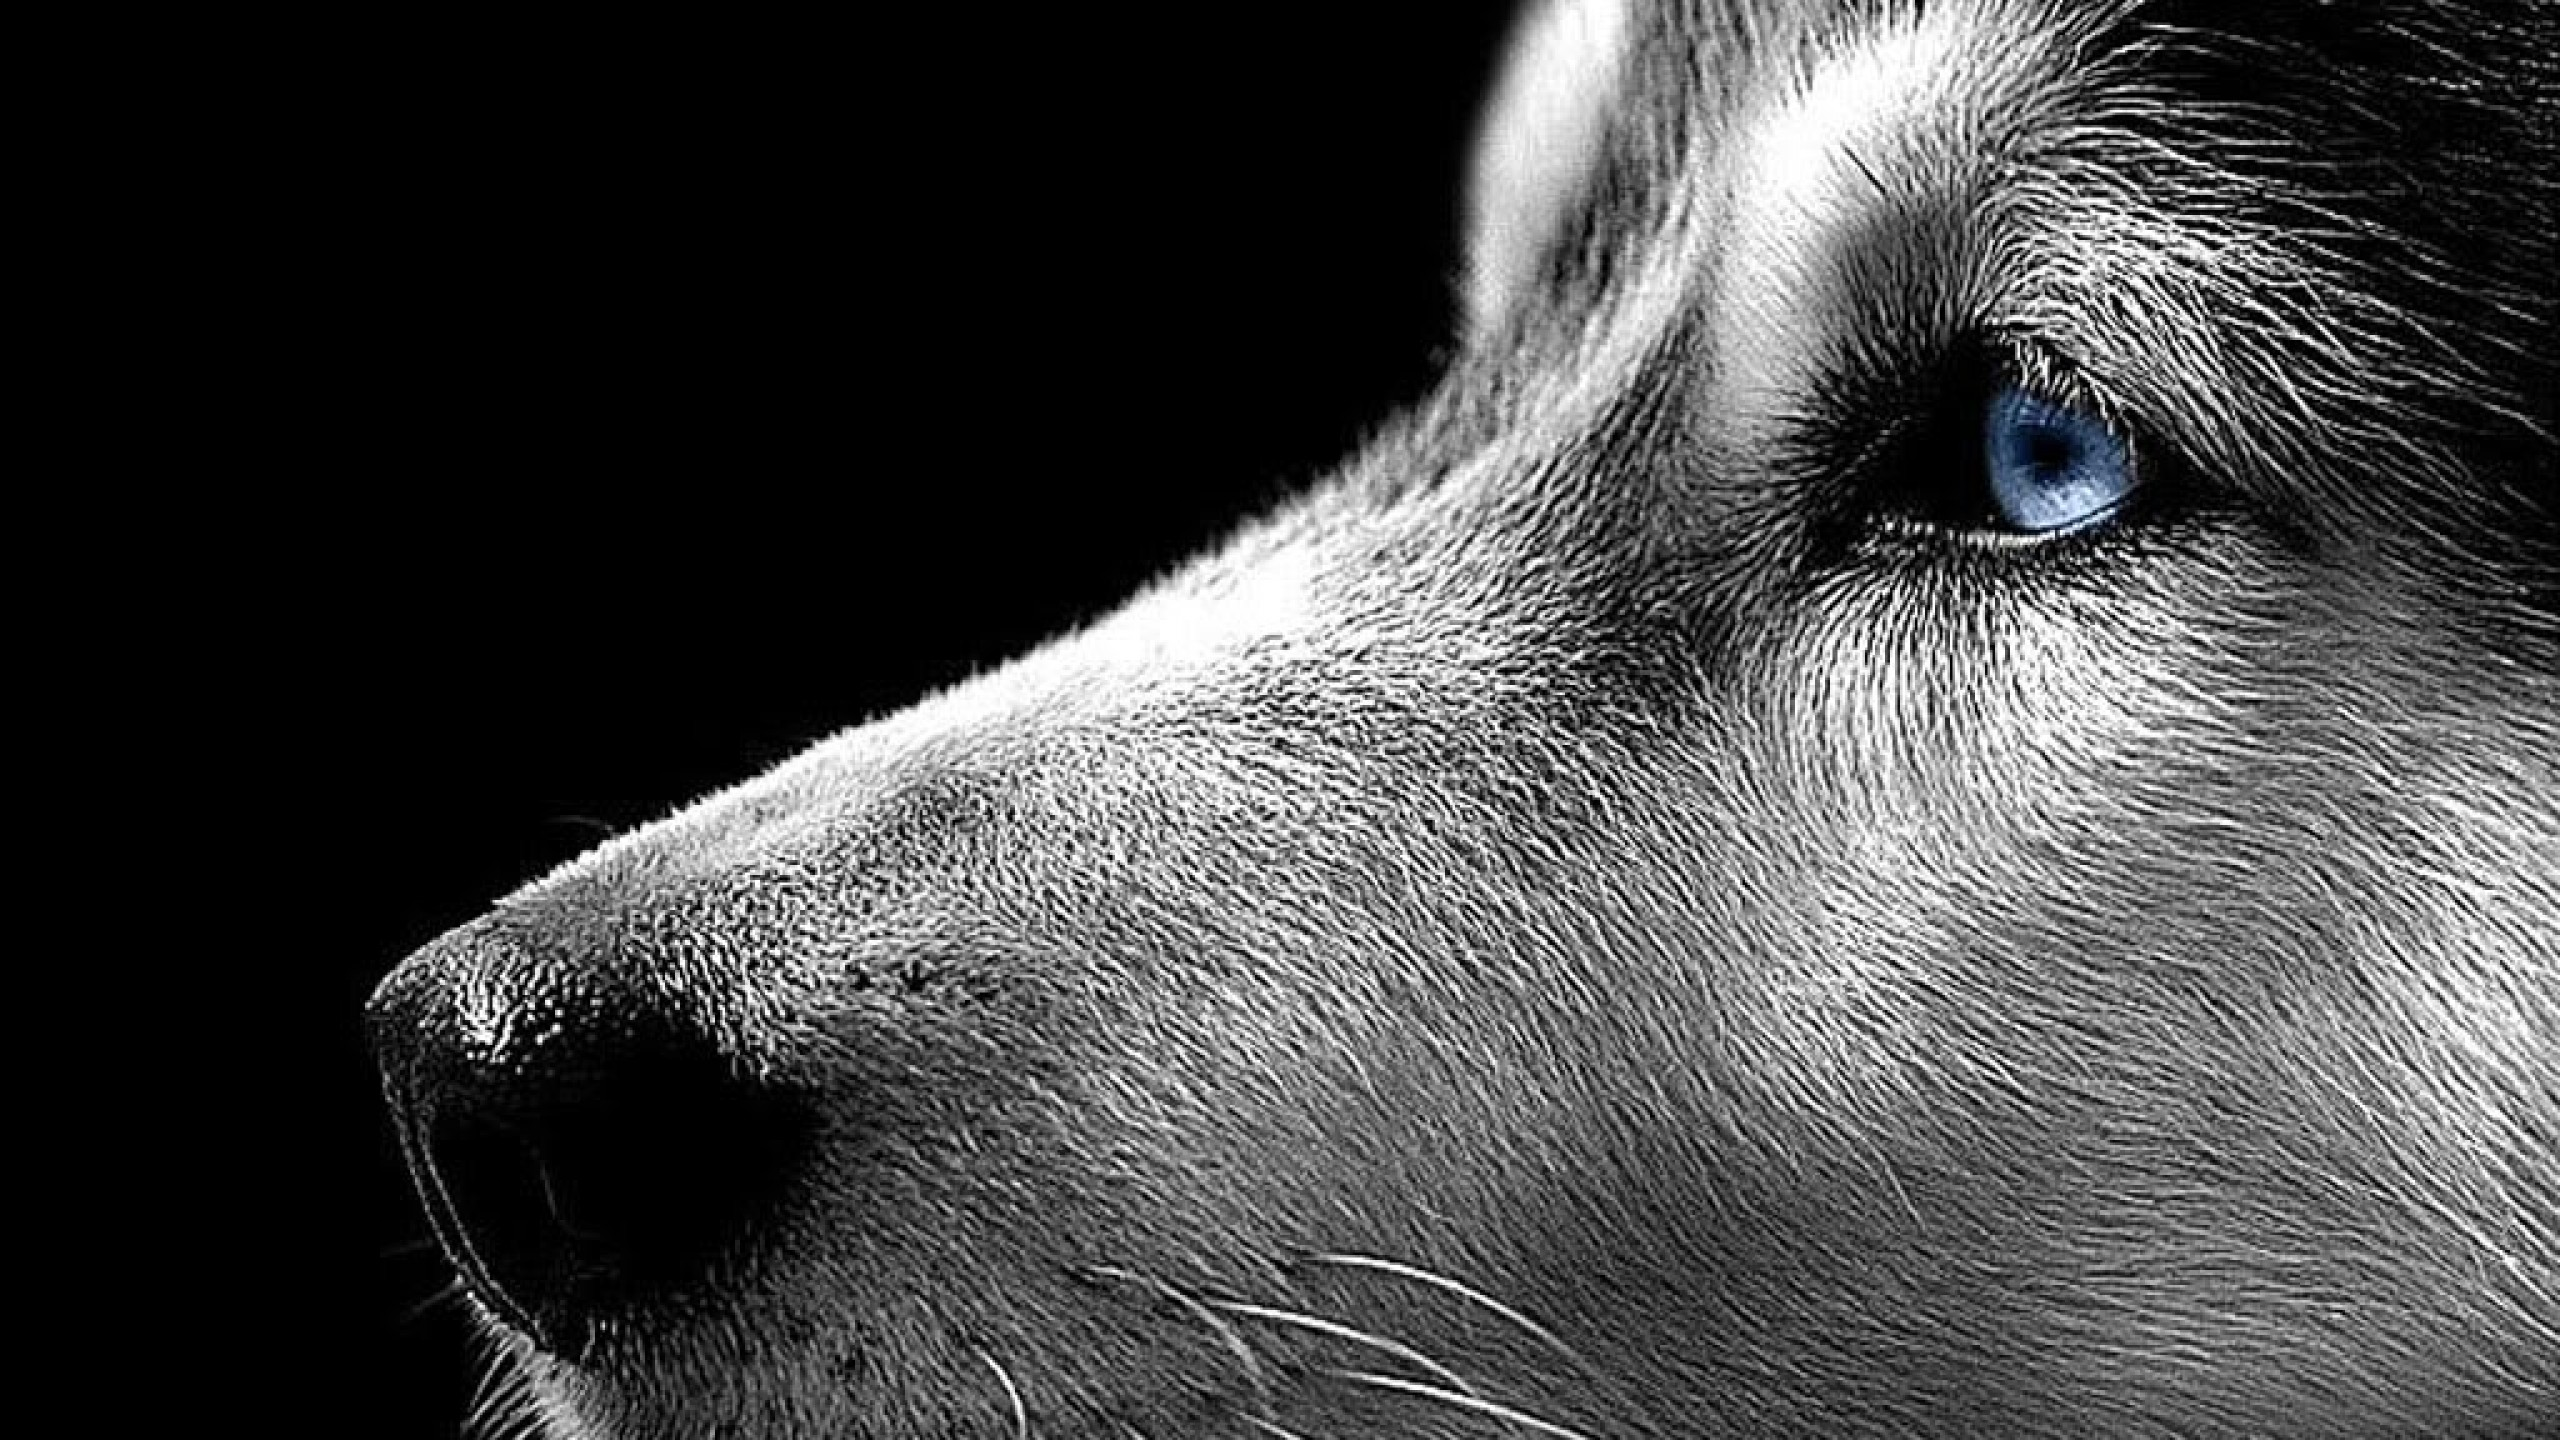 Siberian Husky Wallpaper Free Download